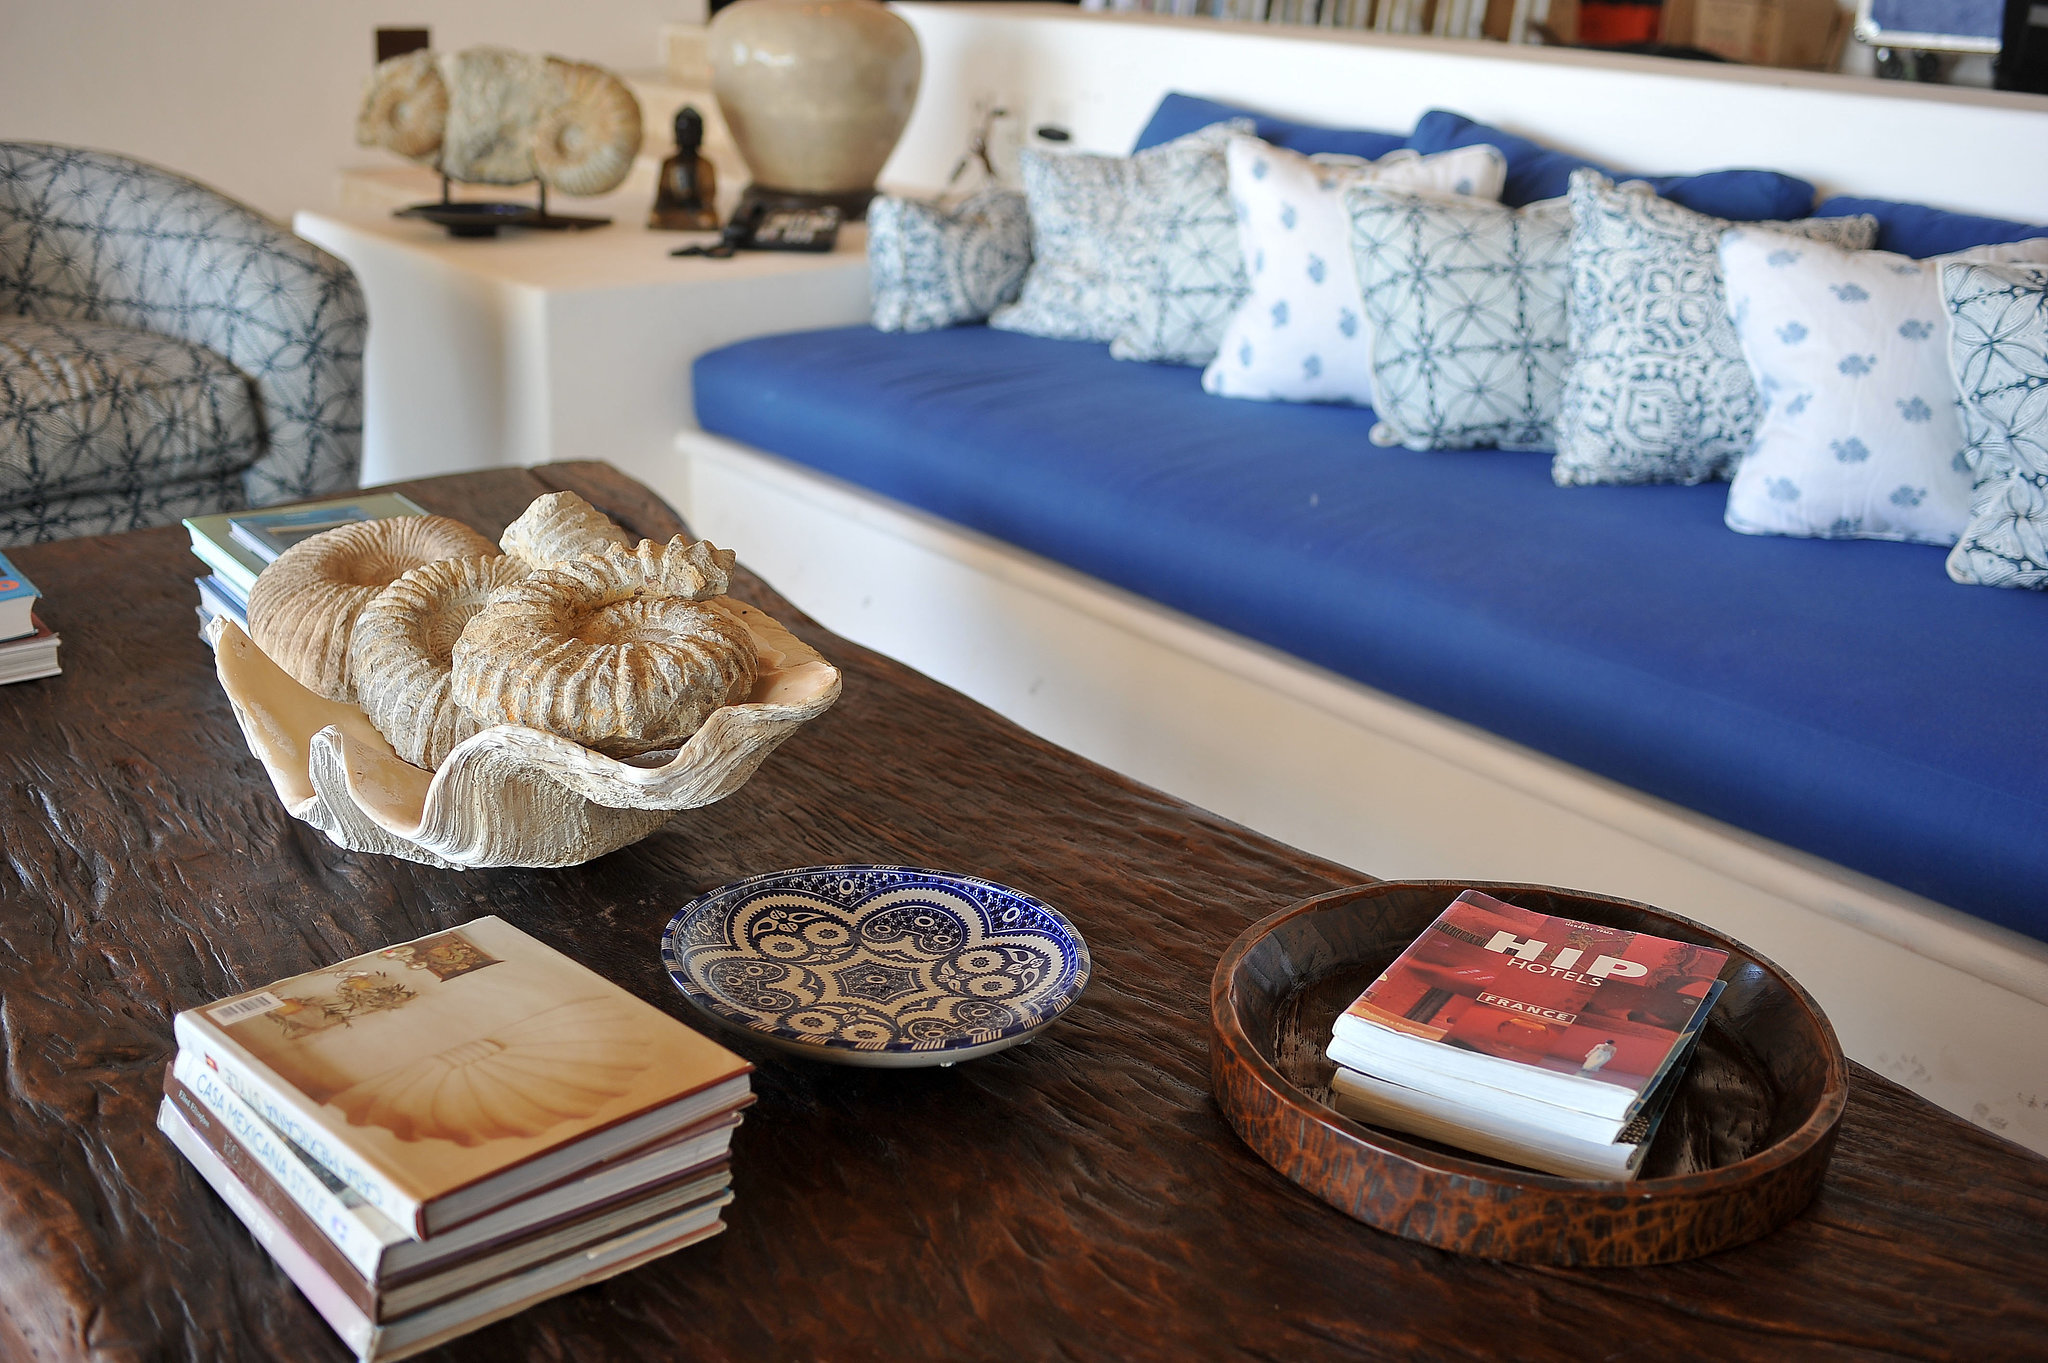 Of course, there's a perfectly styled coffee table!